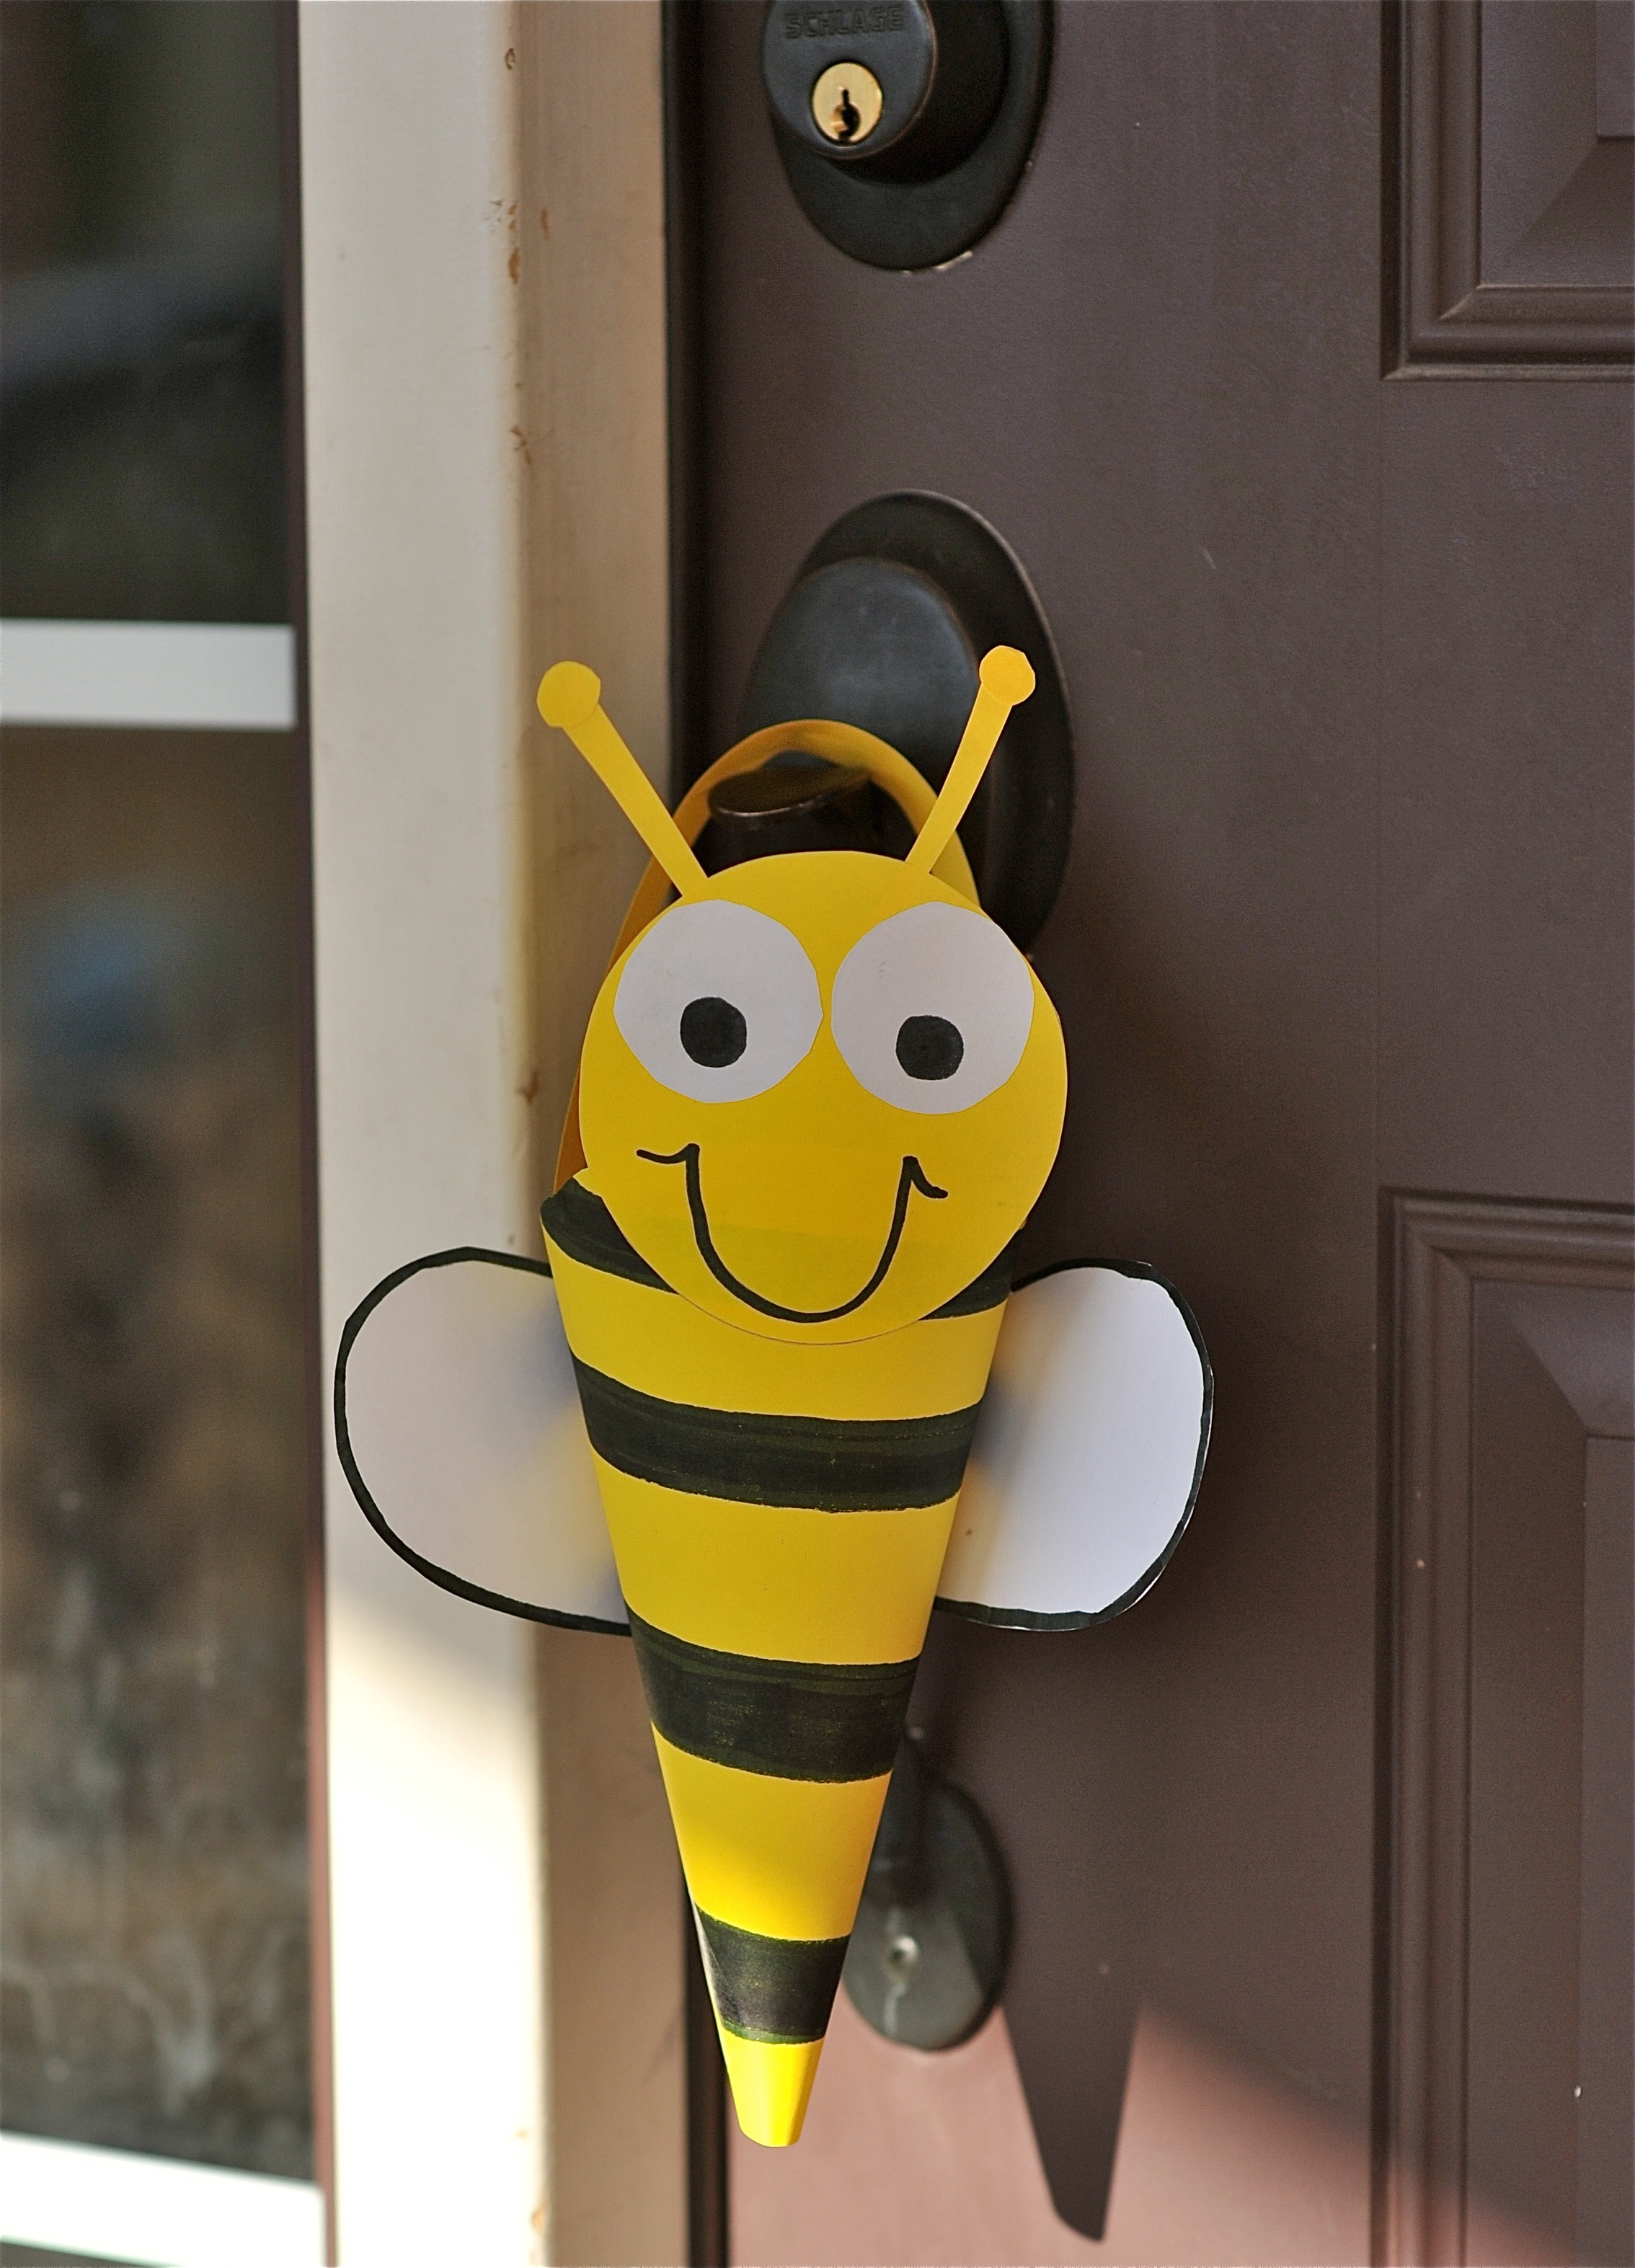 Craft bumble bee - Advertisements